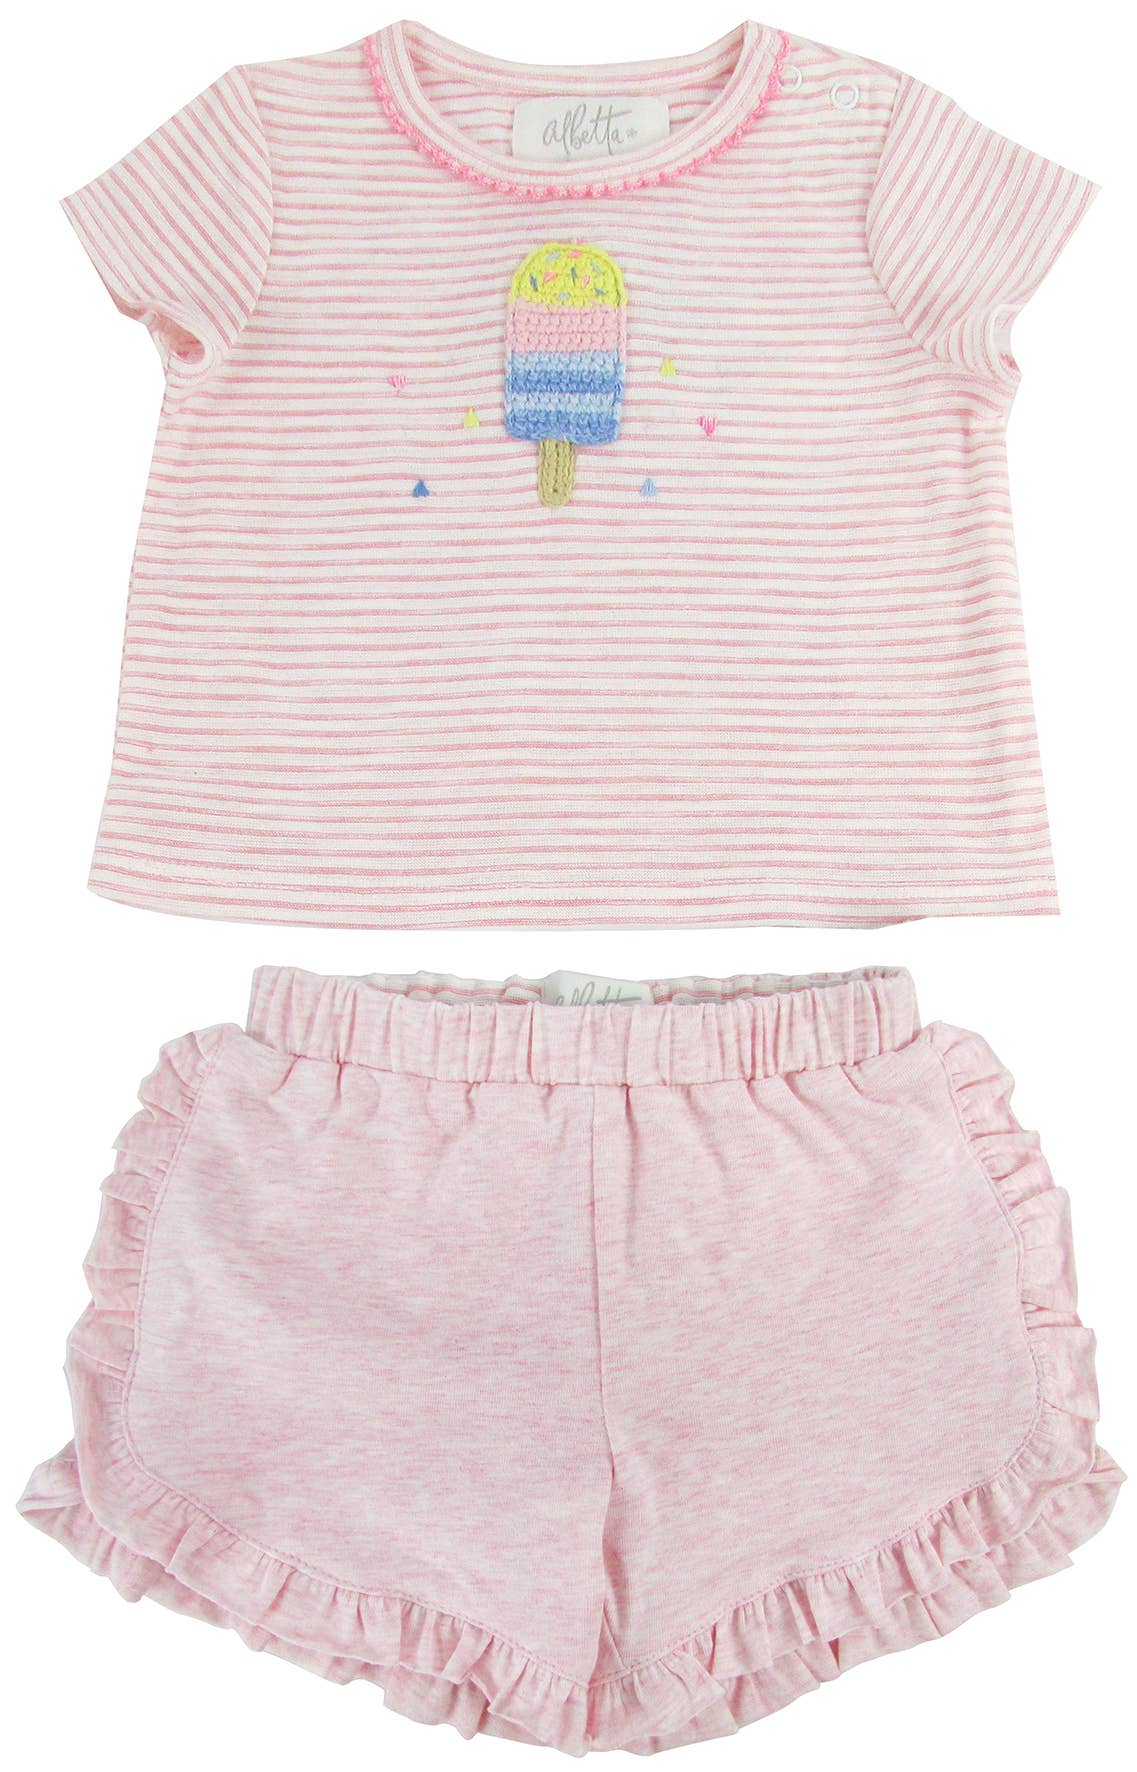 Amazing Teacher Chemical Element Babies 100/% Cotton Rompers Pink